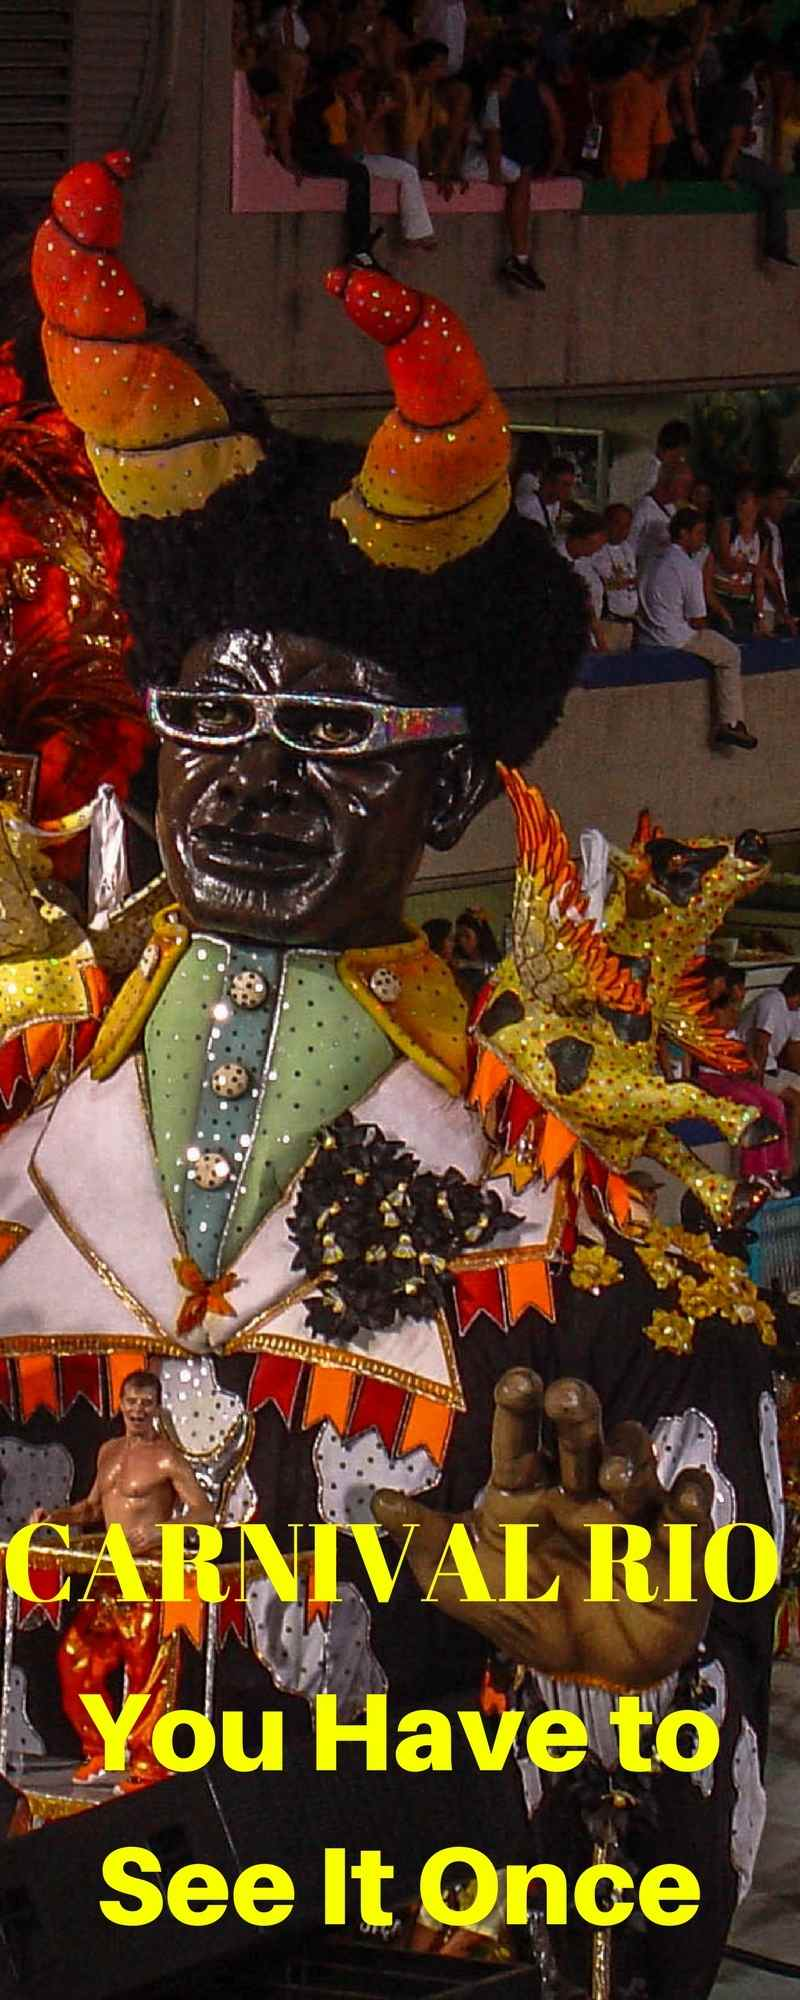 Carnaval Rio - You Have to See It Once | Carnaval World's Biggest Party | Rio de Janeiro | Brazil | Travel Tips | Travel Tips and Tricks | Travel Tips Roadtrip | Travel Tips International | Travel Tips Packing | Travel Tips Planning | Travel Tips Budget | ARoadToTravel.com | Travel